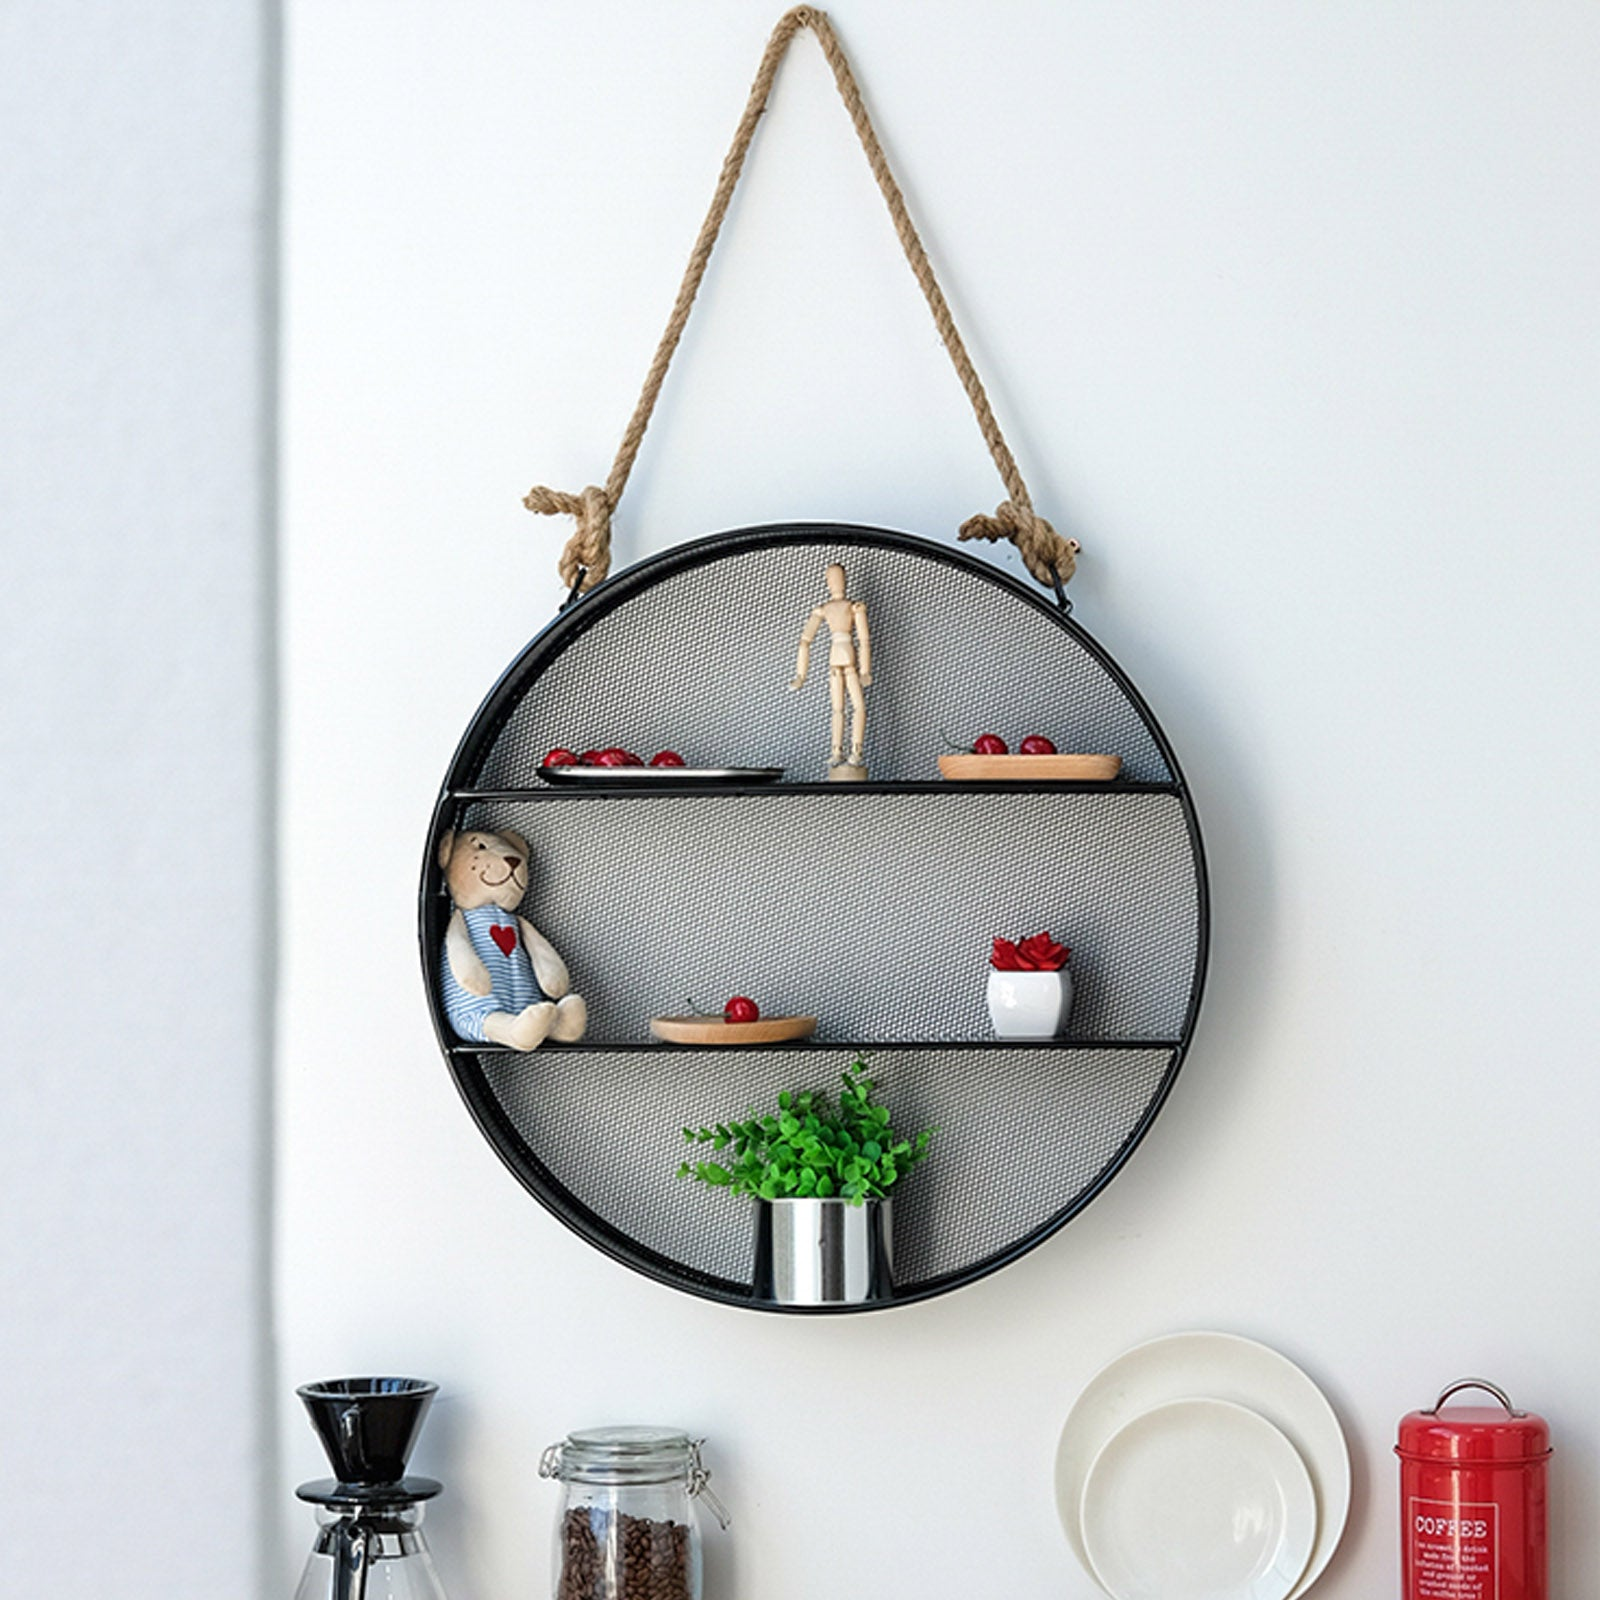 Wall shelf   BS-021 -  رف جداري - Shop Online Furniture and Home Decor Store in Dubai, UAE at ebarza